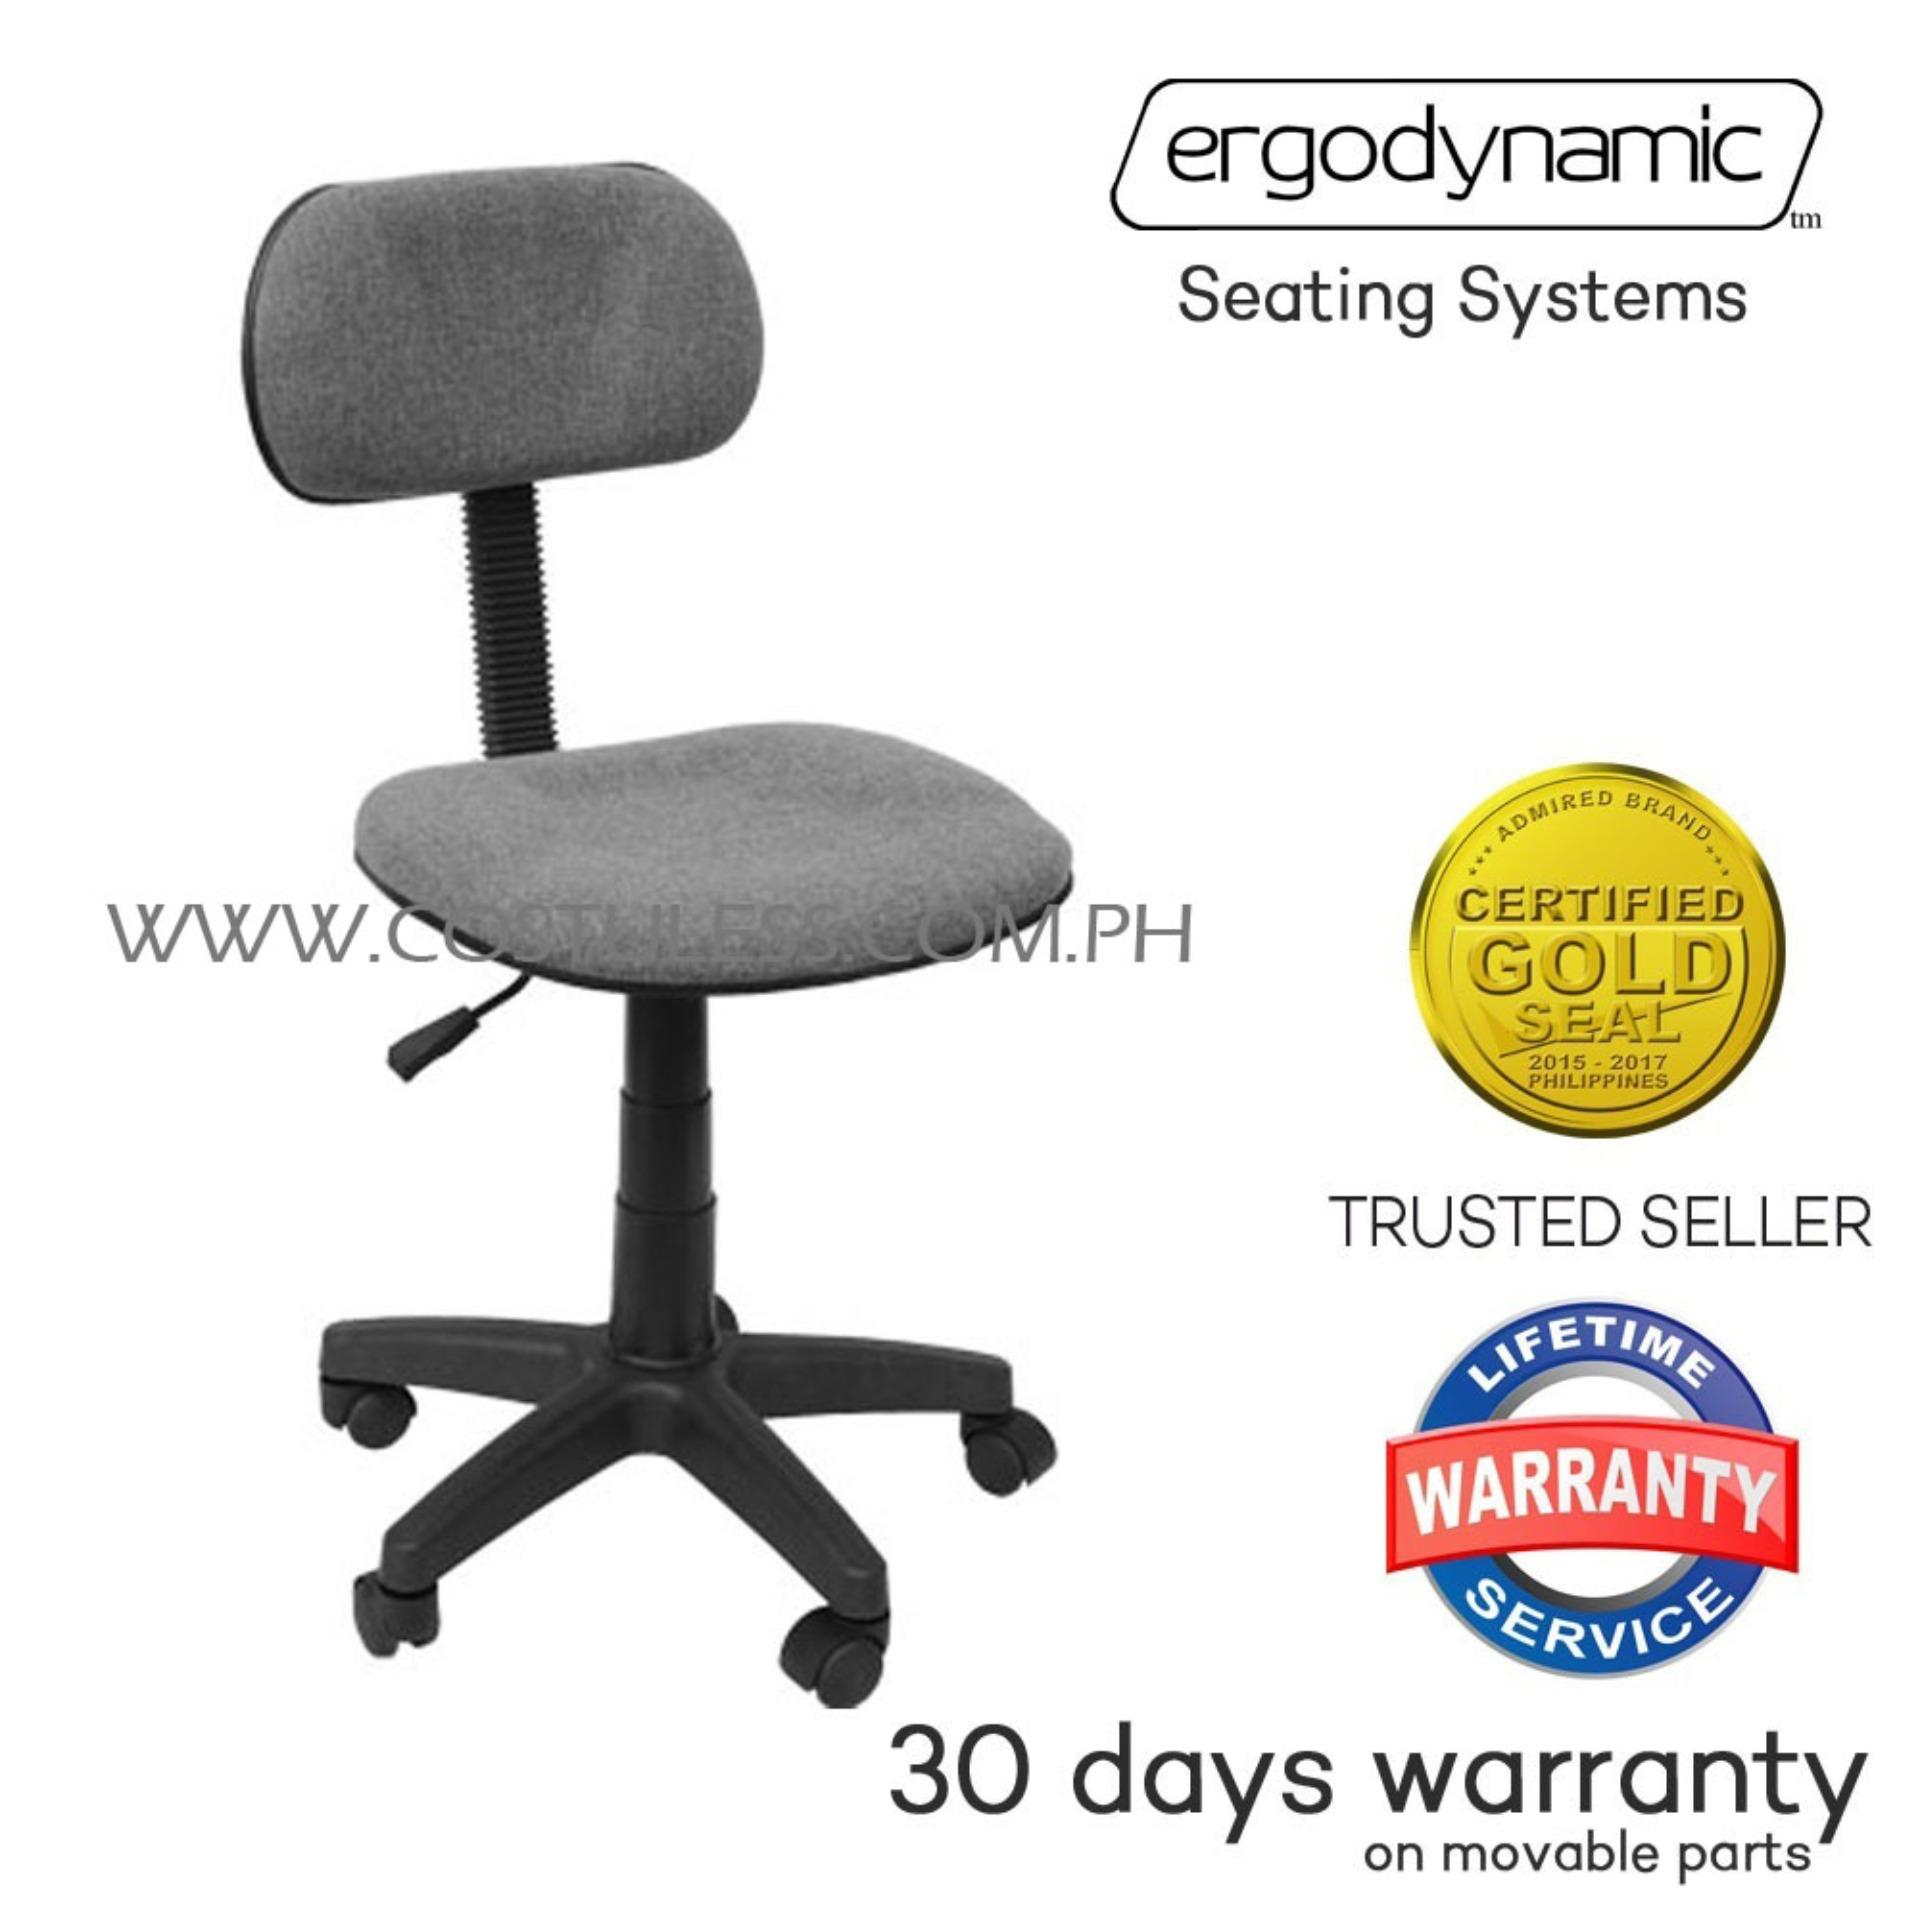 Ergodynamic Philippines Ergodynamic price list High & Low Back